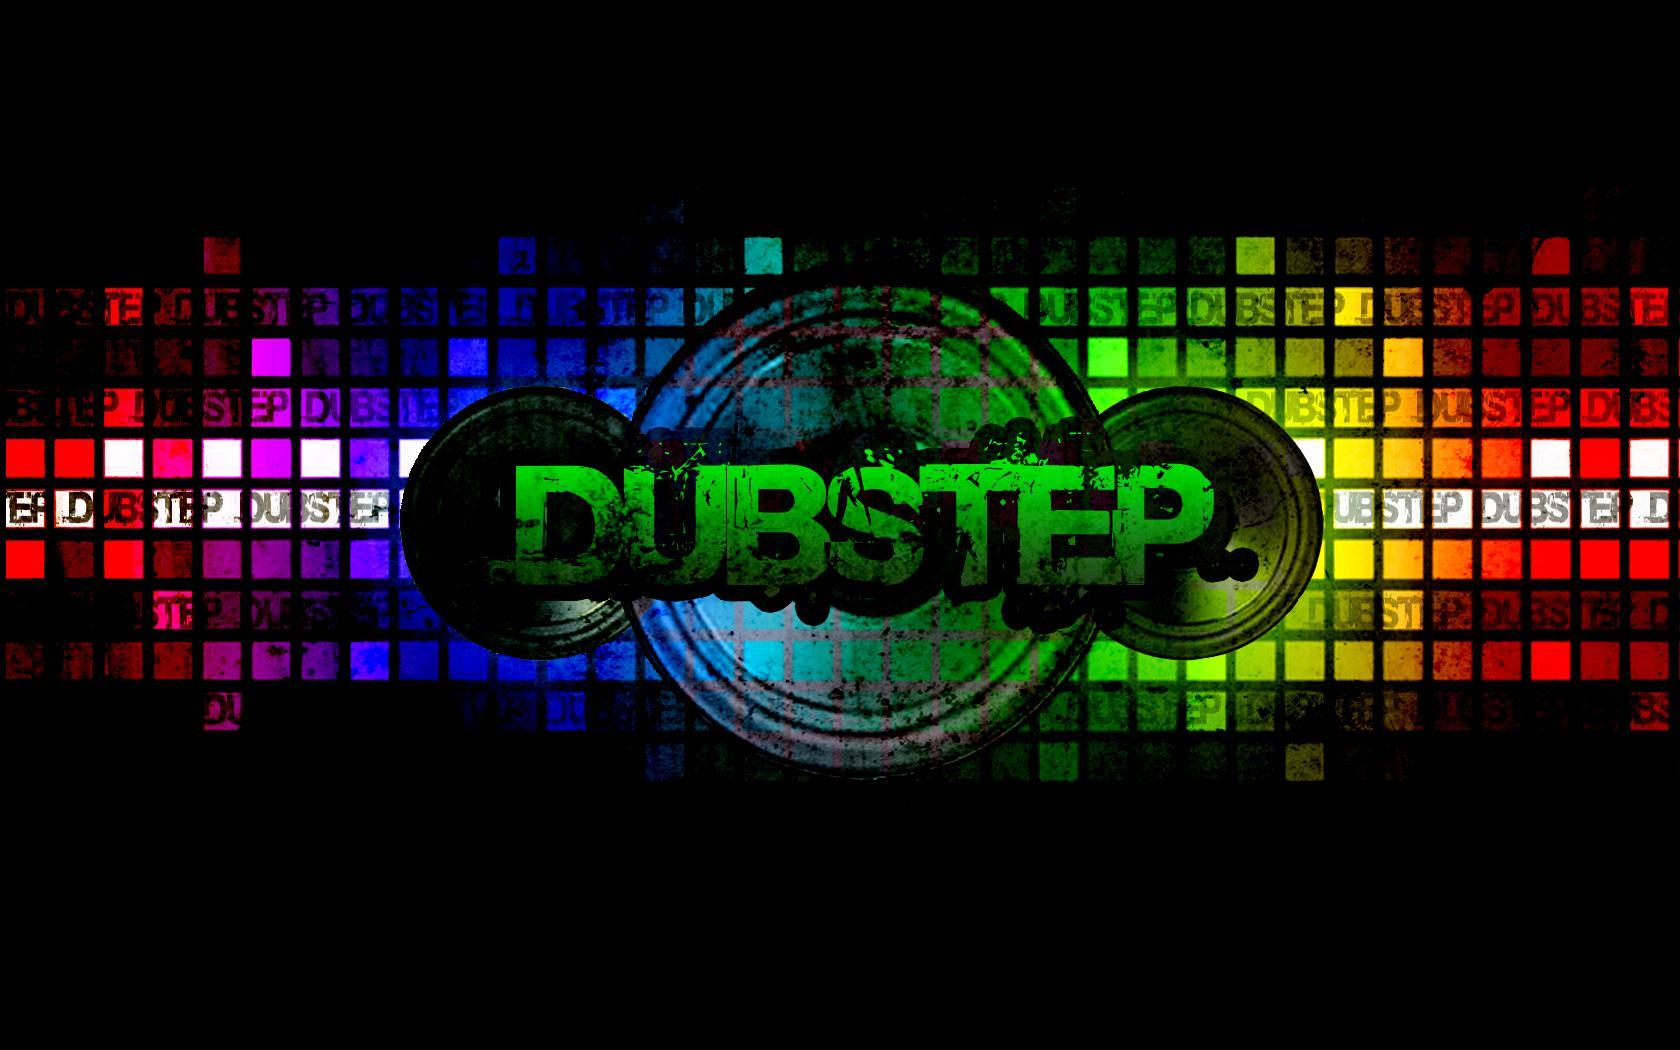 Dubstep... and stuff